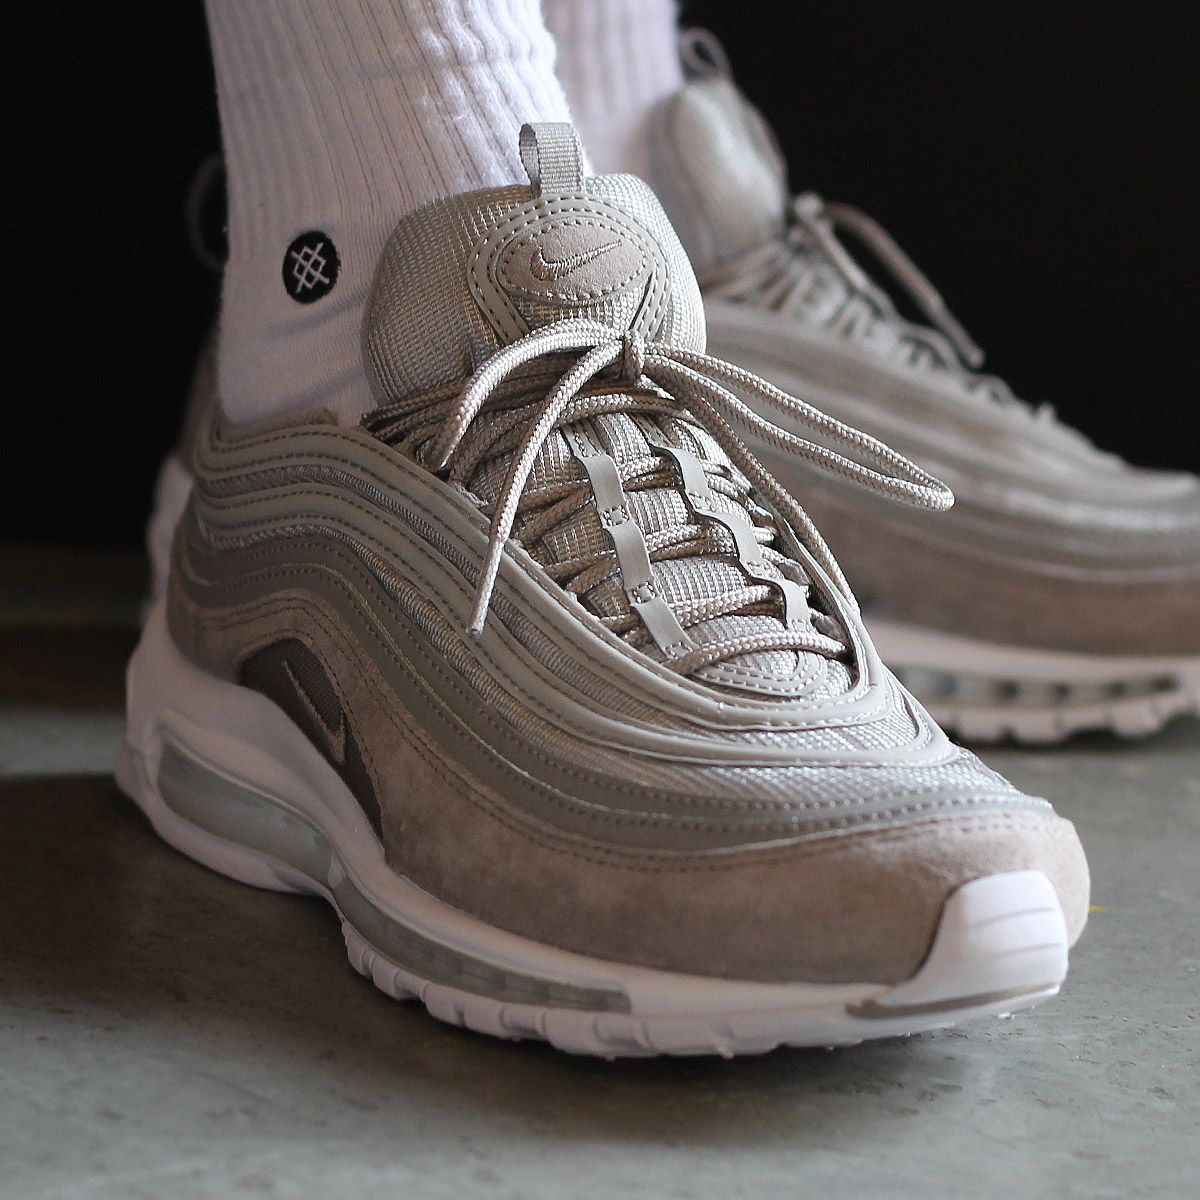 Nike Air Max 97 Cobblestone at Urban Industry Nike air max  Nike air max